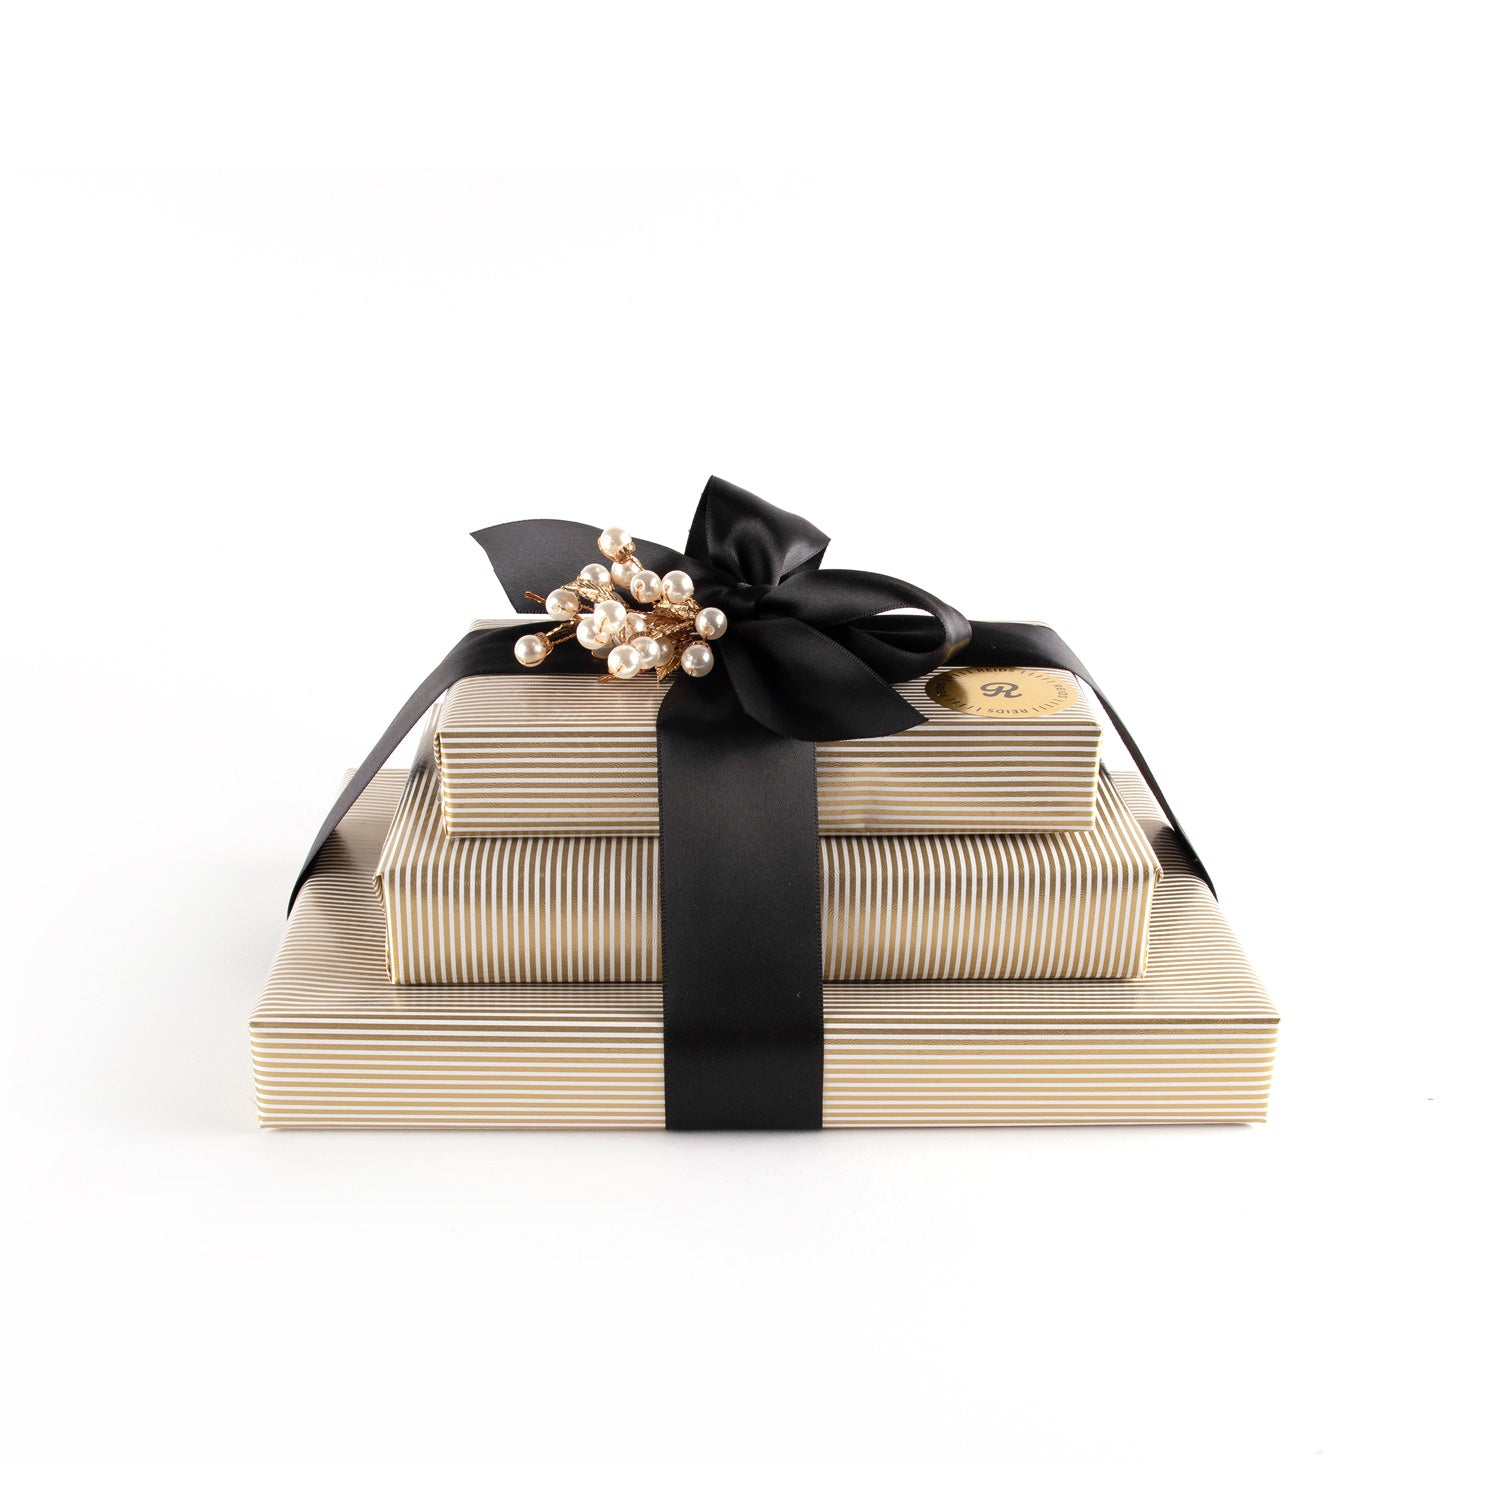 Three stacked Trio Box . Gold, and white pin-stripped wrapping paper. Tied with a black satin ribbon and white decorative piece.